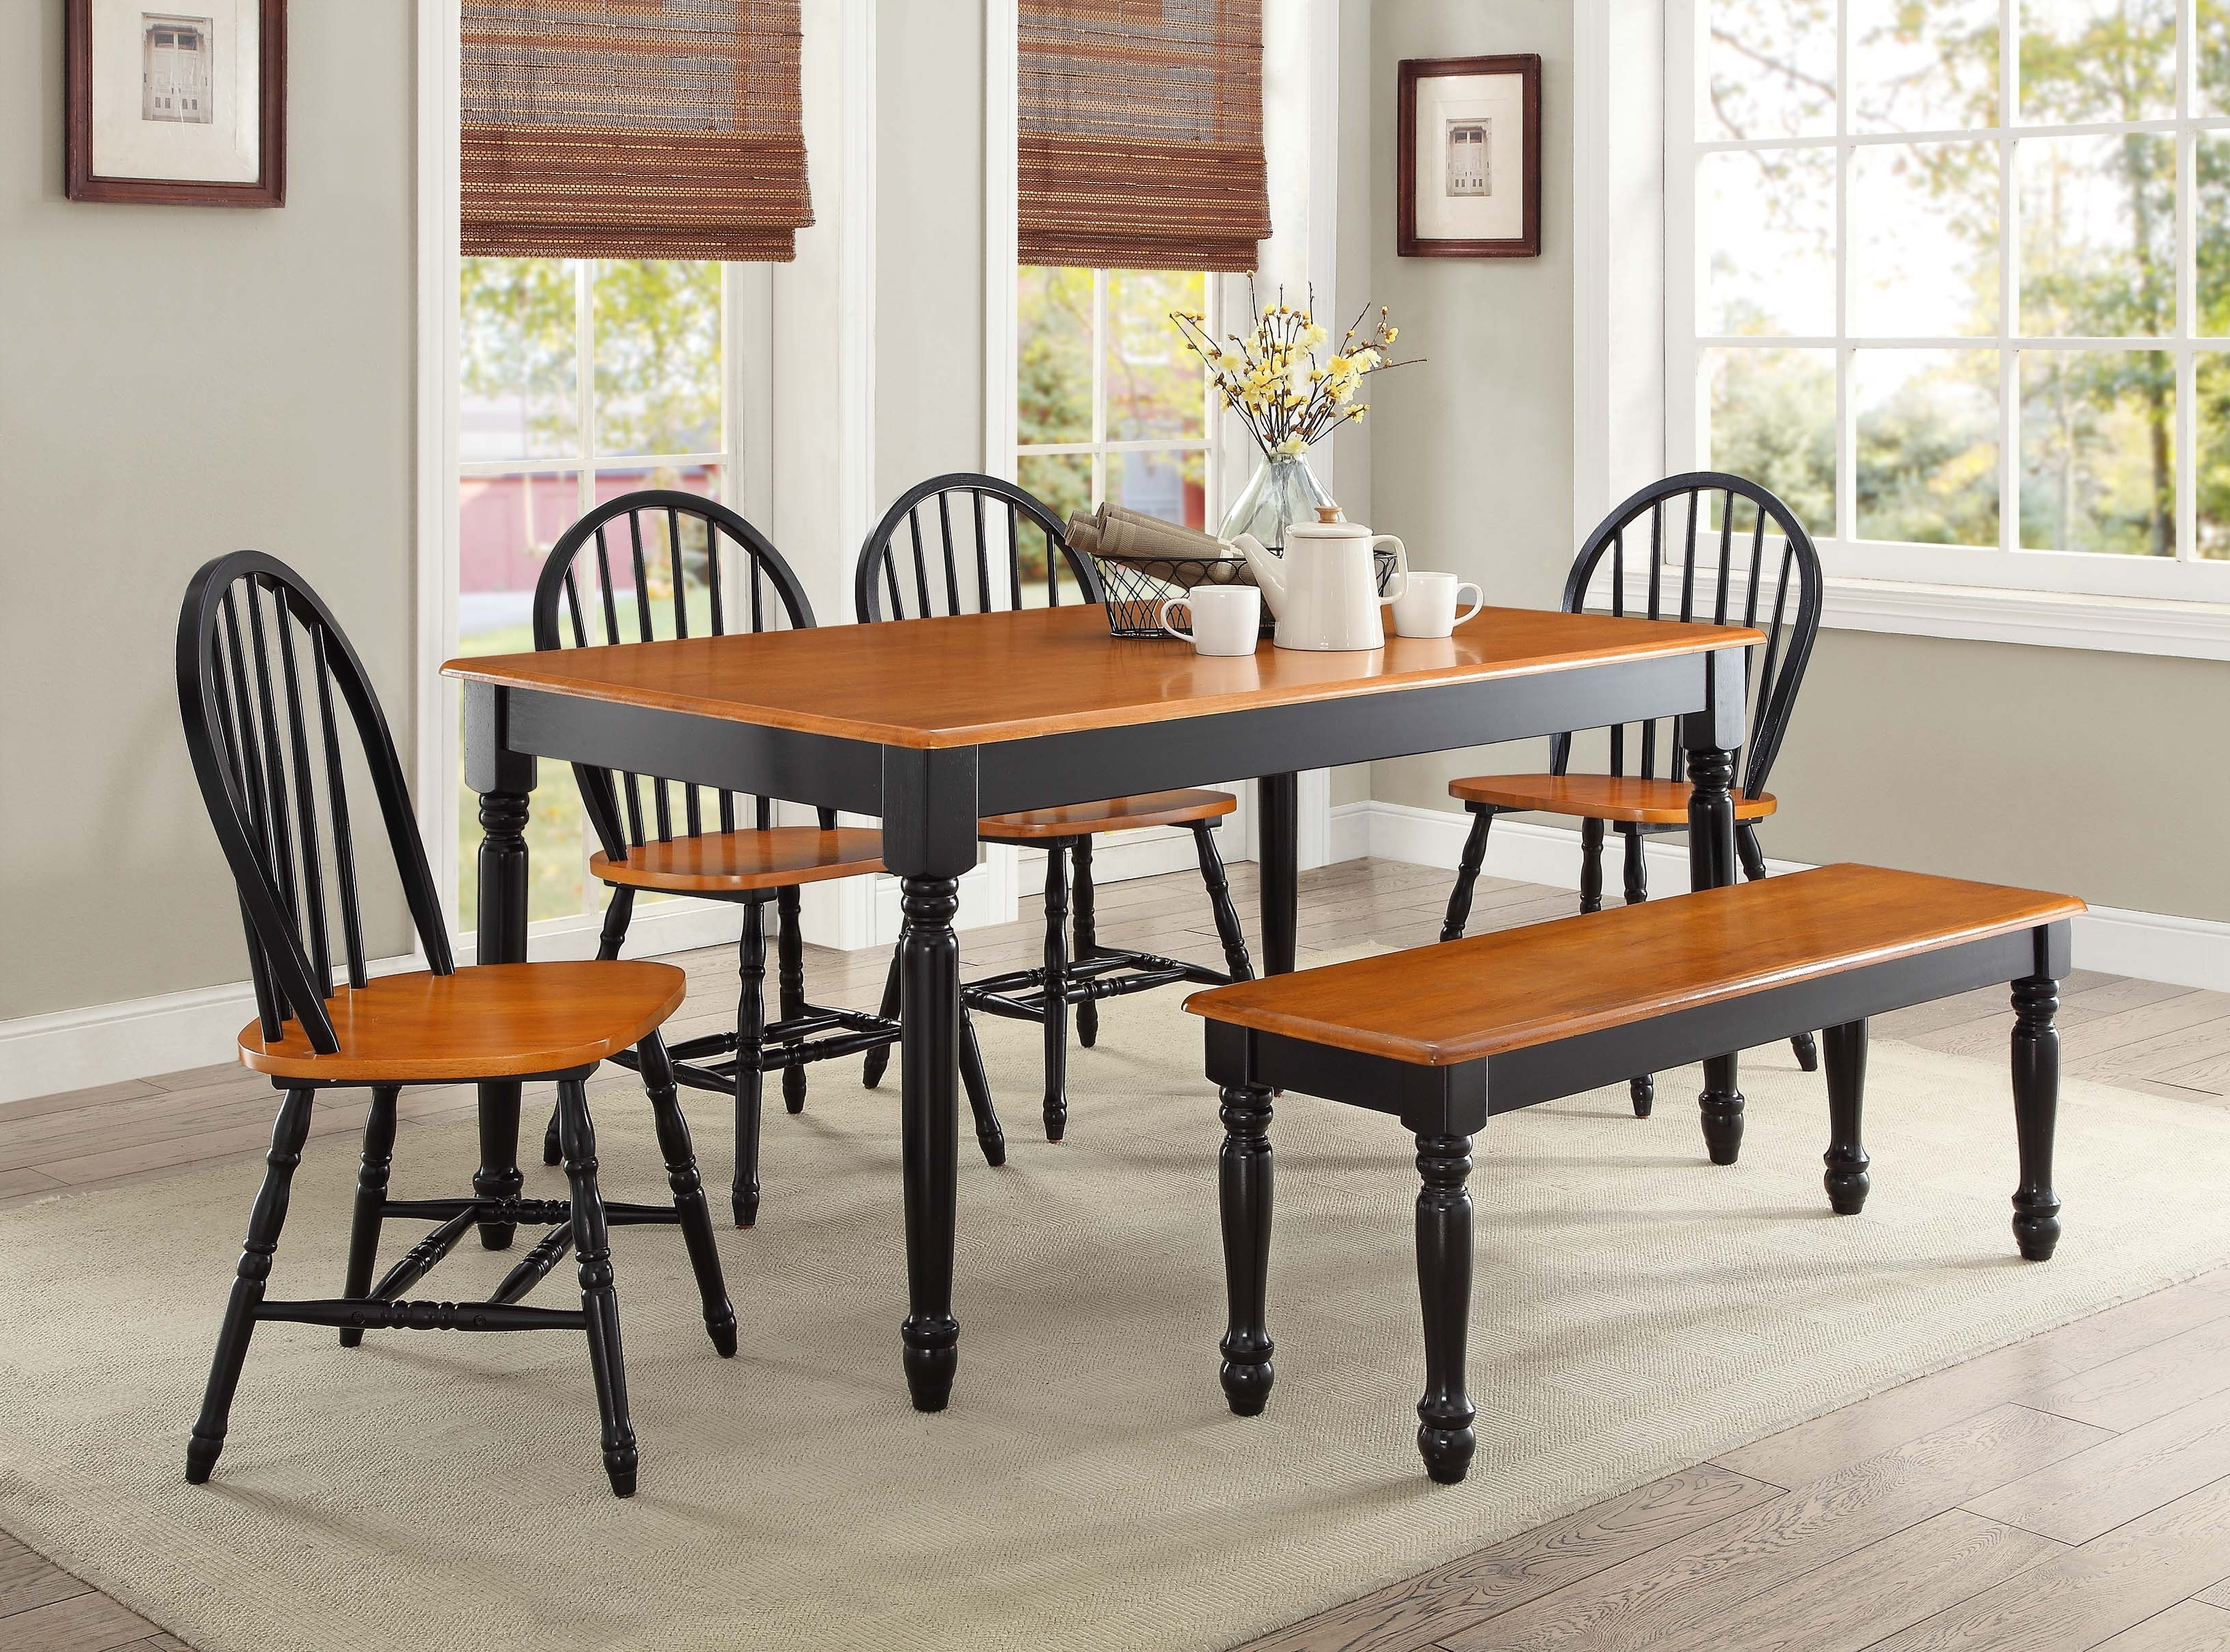 Craftsman 9 Piece Extension Dining Sets Pertaining To Preferred Dining Room Sets At Big Lots — Bluehawkboosters Home Design (Gallery 19 of 25)